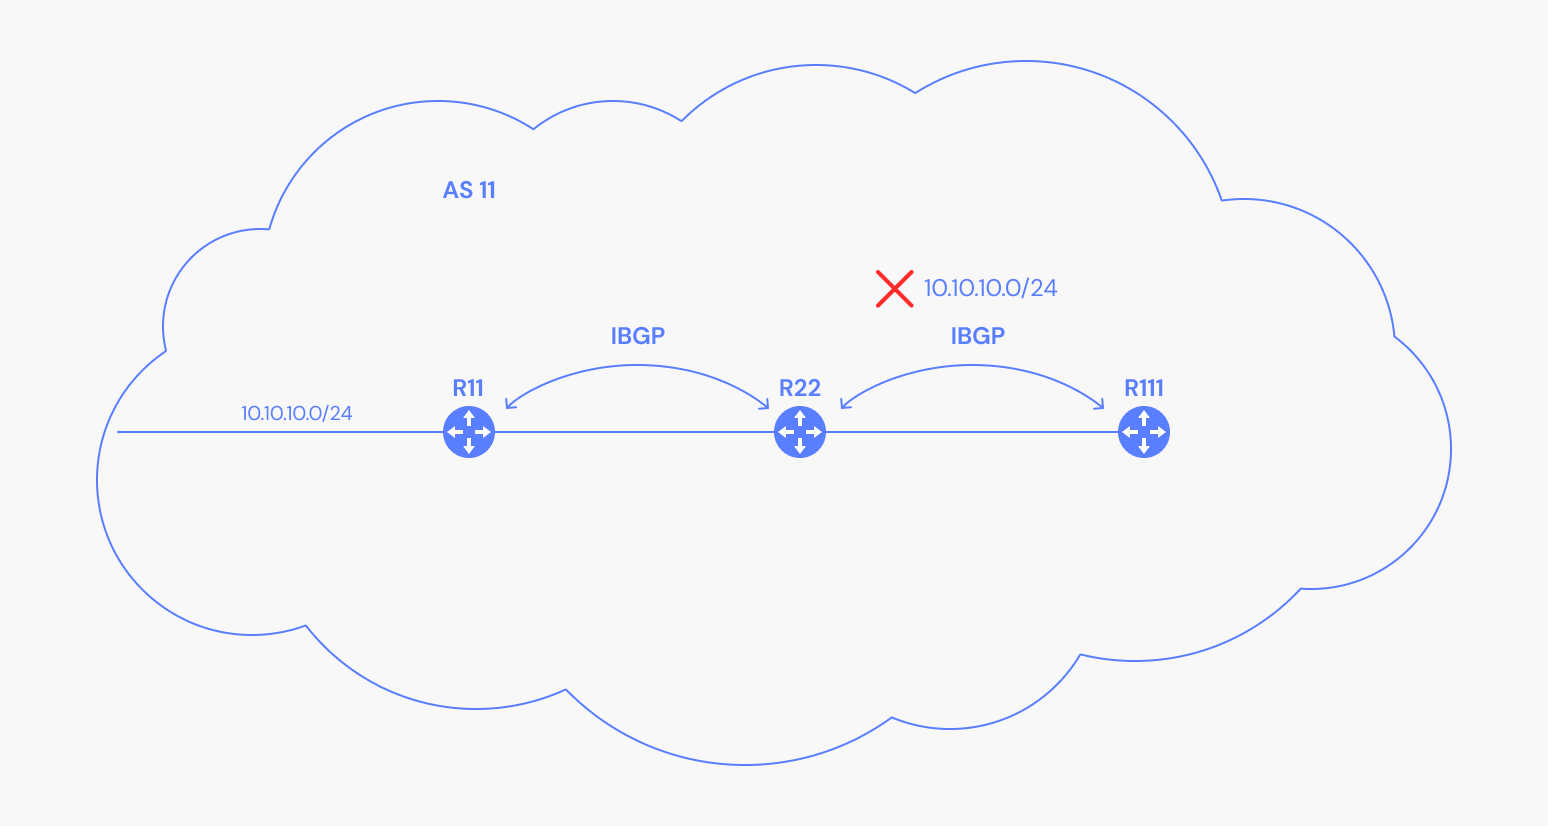 Depiction of a route not being advertised to internal BGP peers